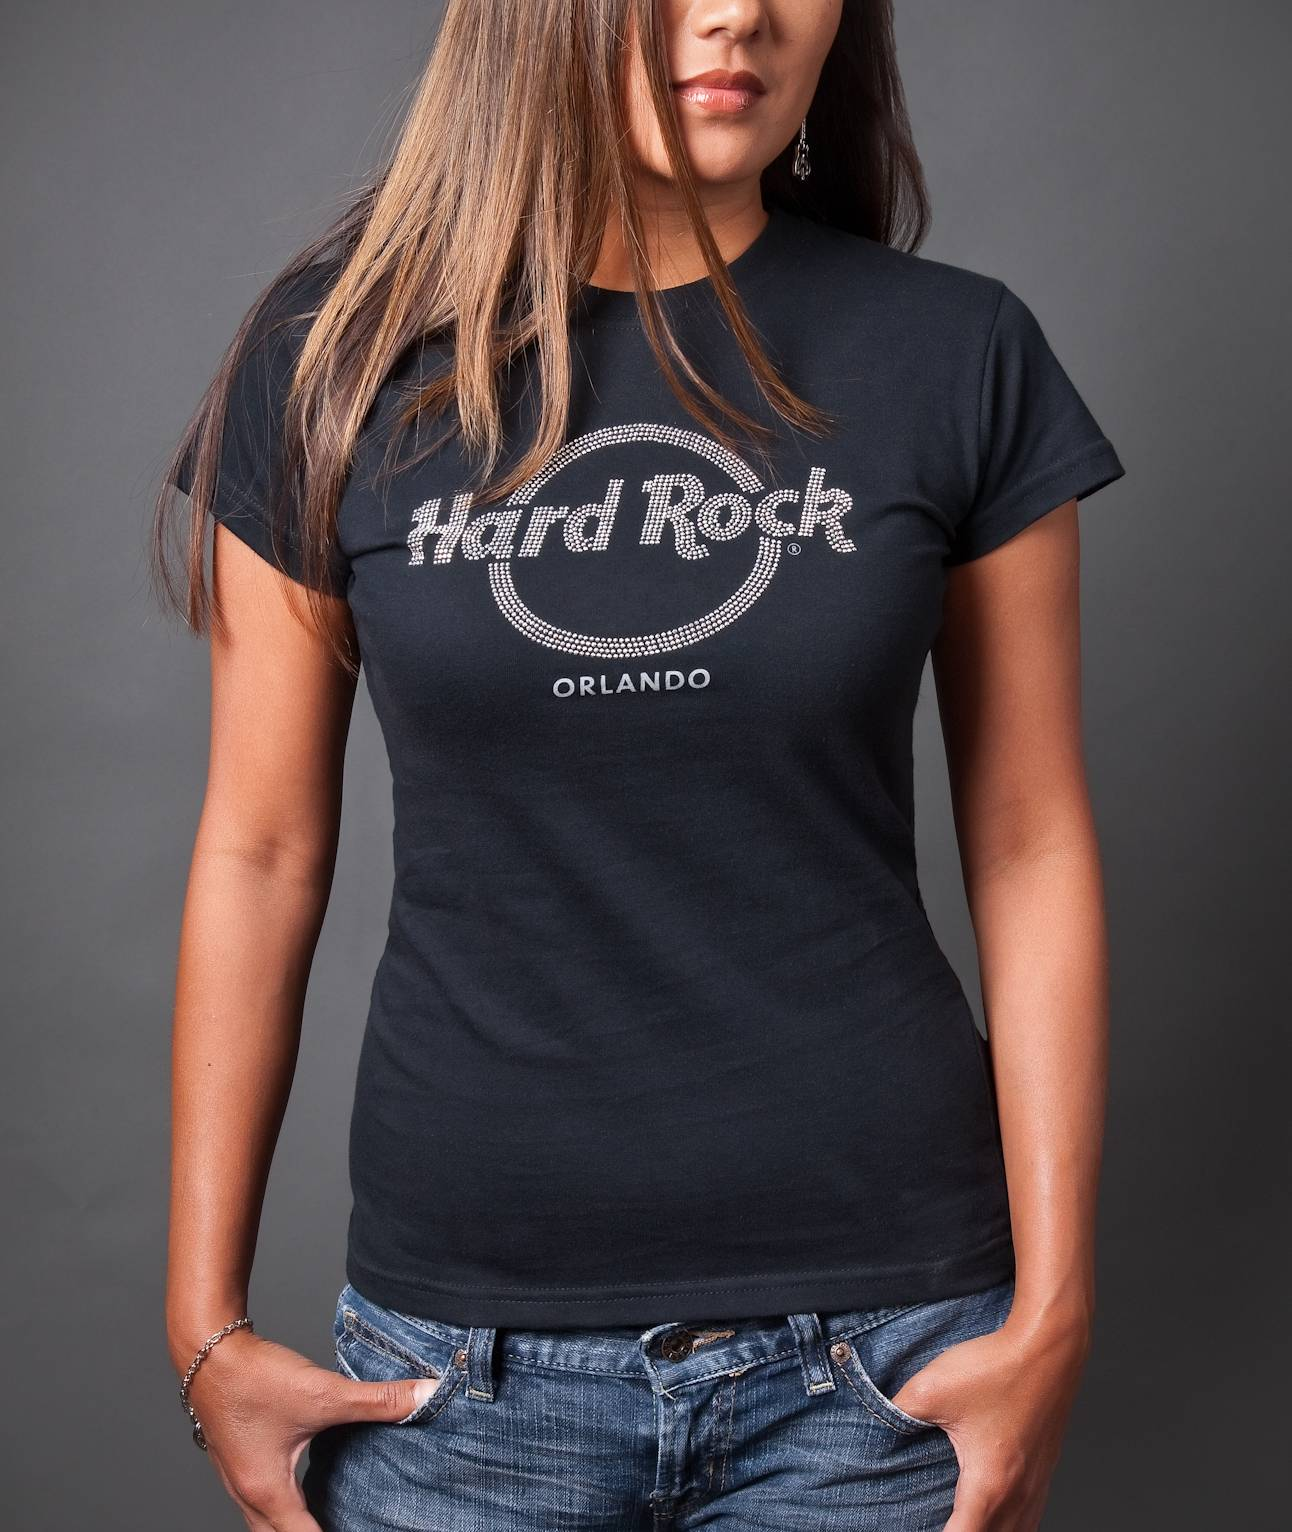 Fake Hard Rock Cafe Shirts